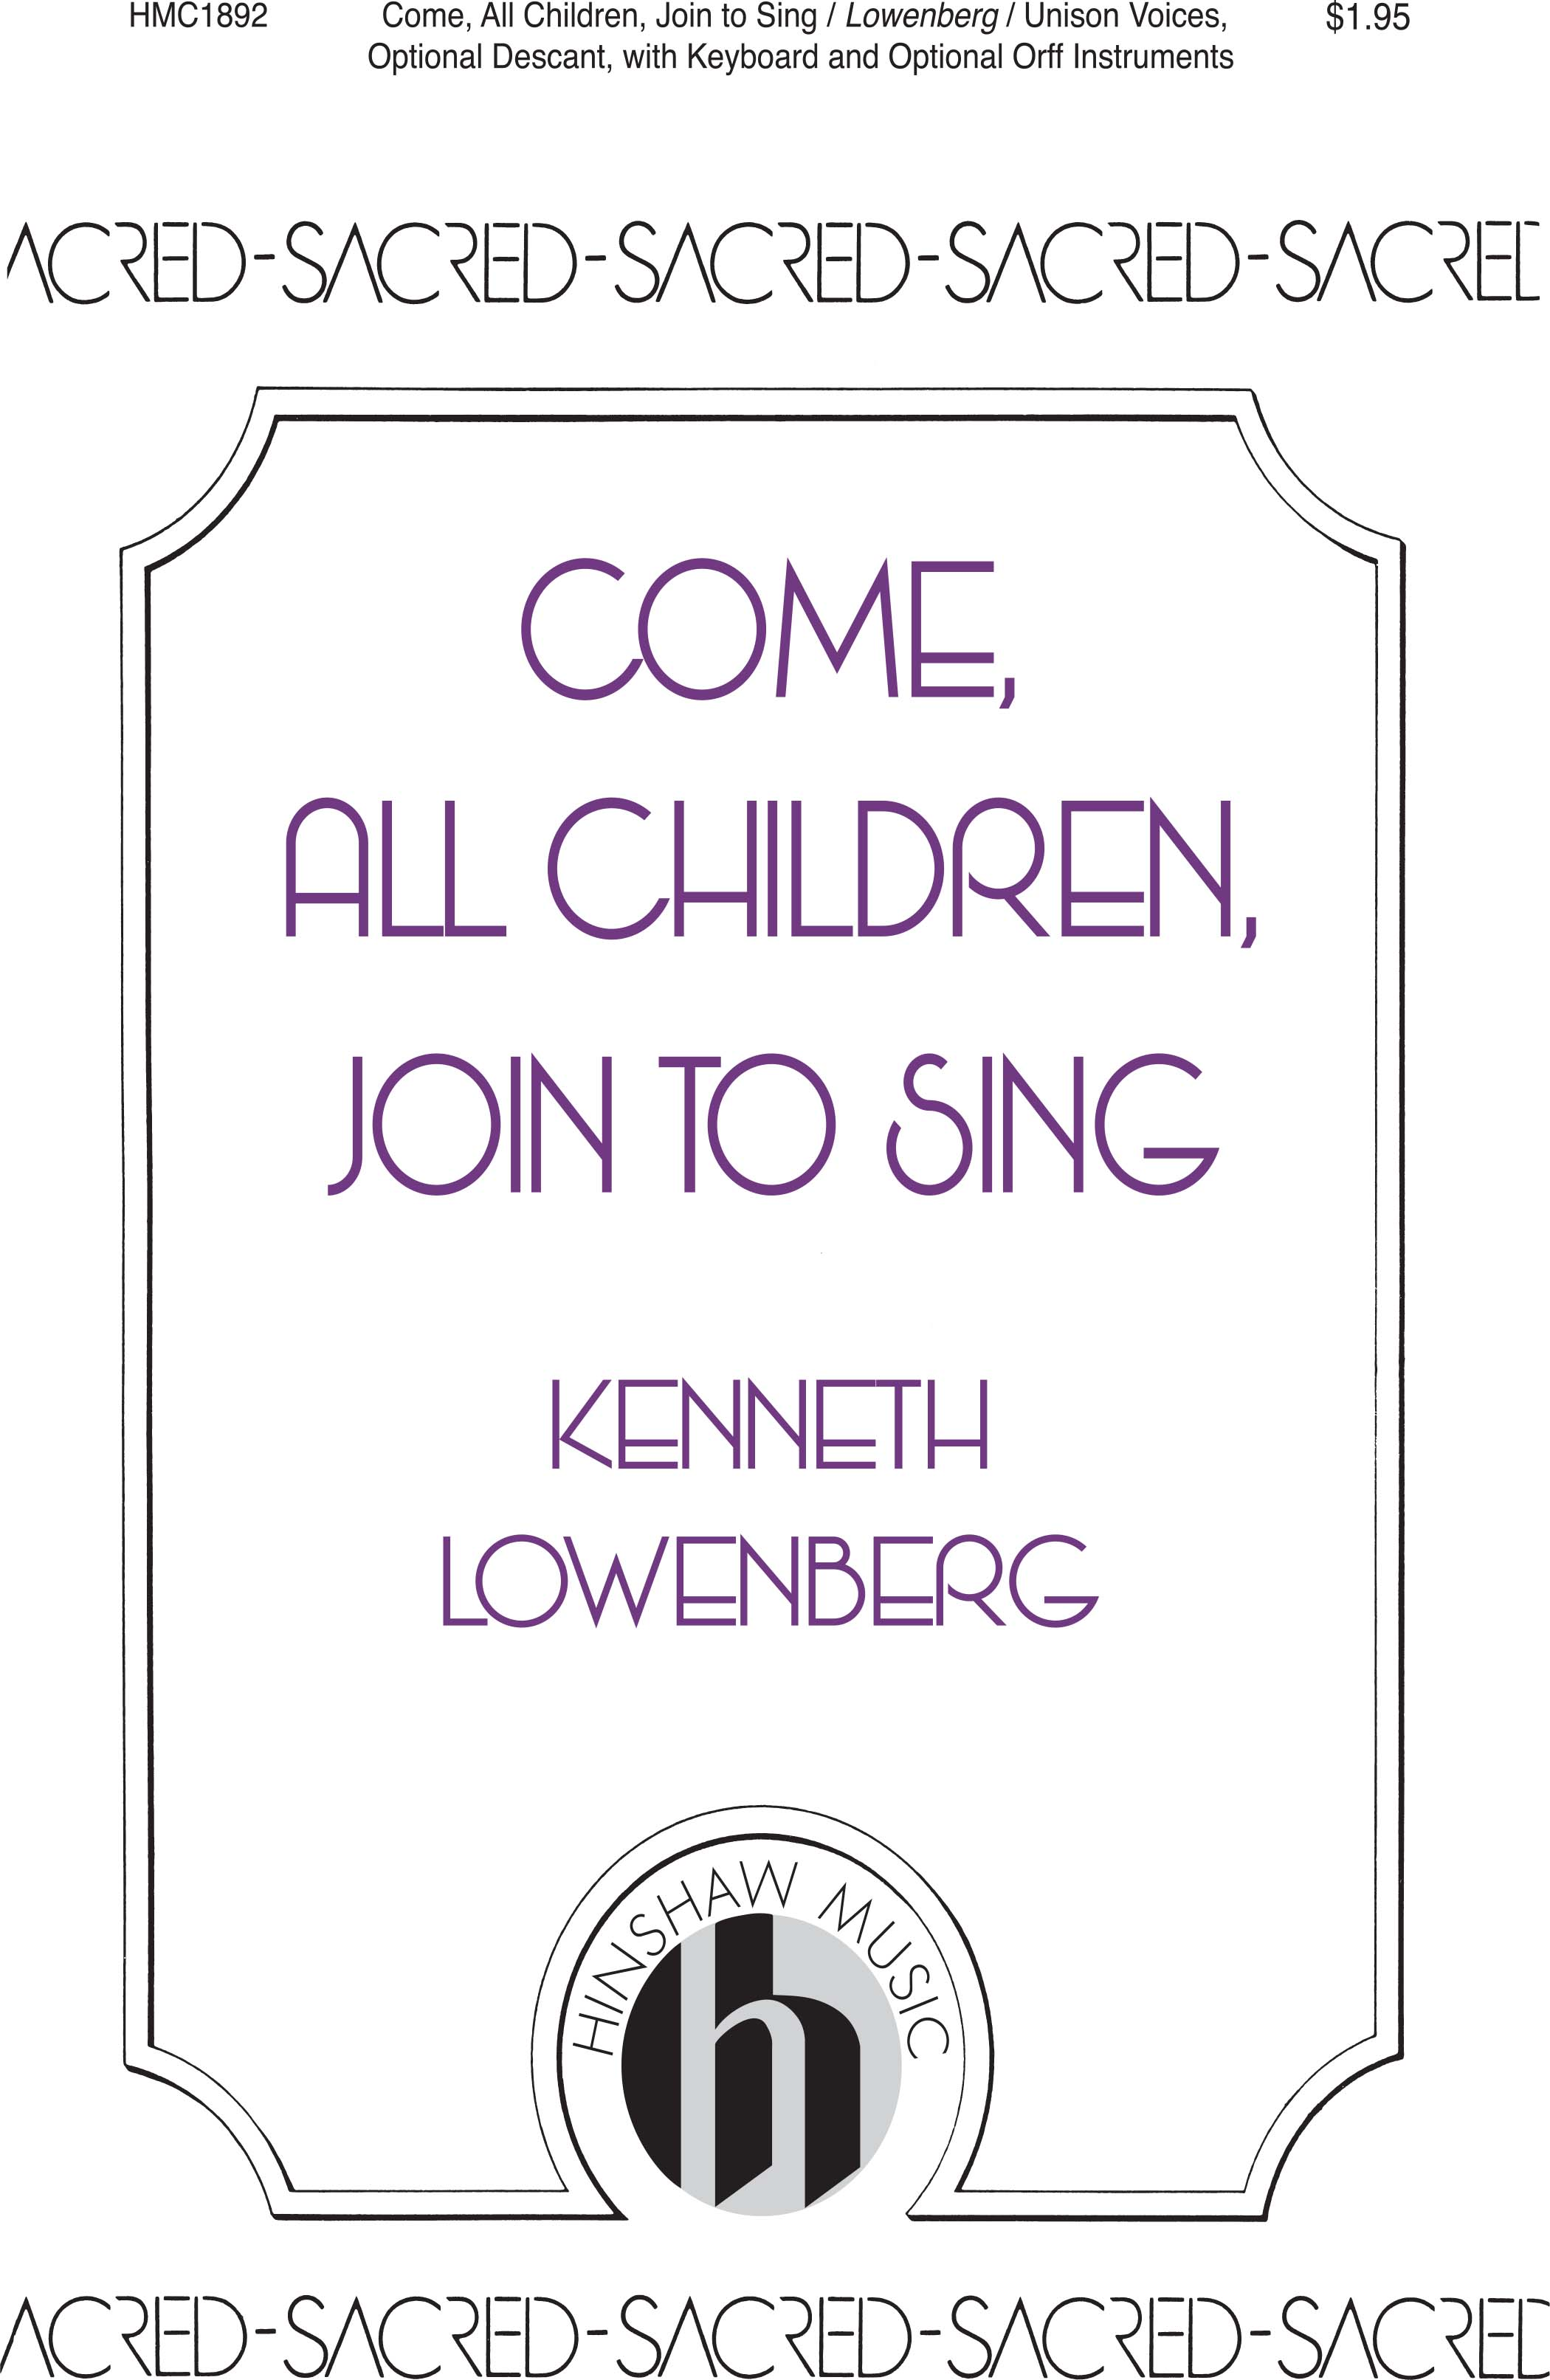 Come, All Children, Join To Sing